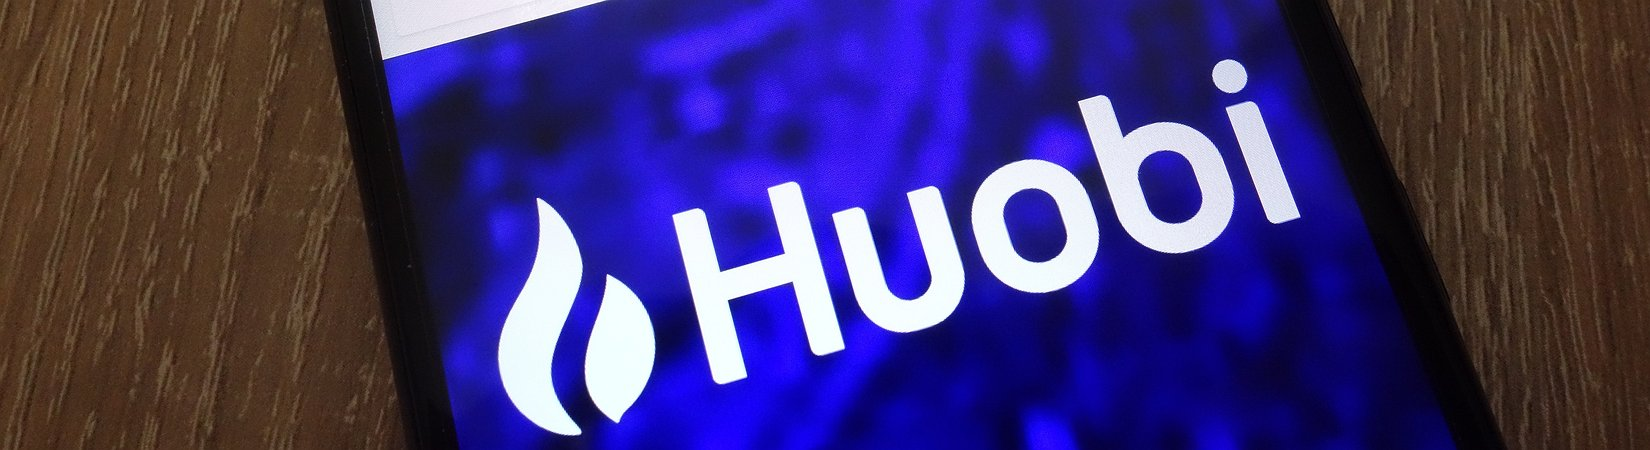 Huobi Wallet Adds Support for Lending and Borrowing Services ...